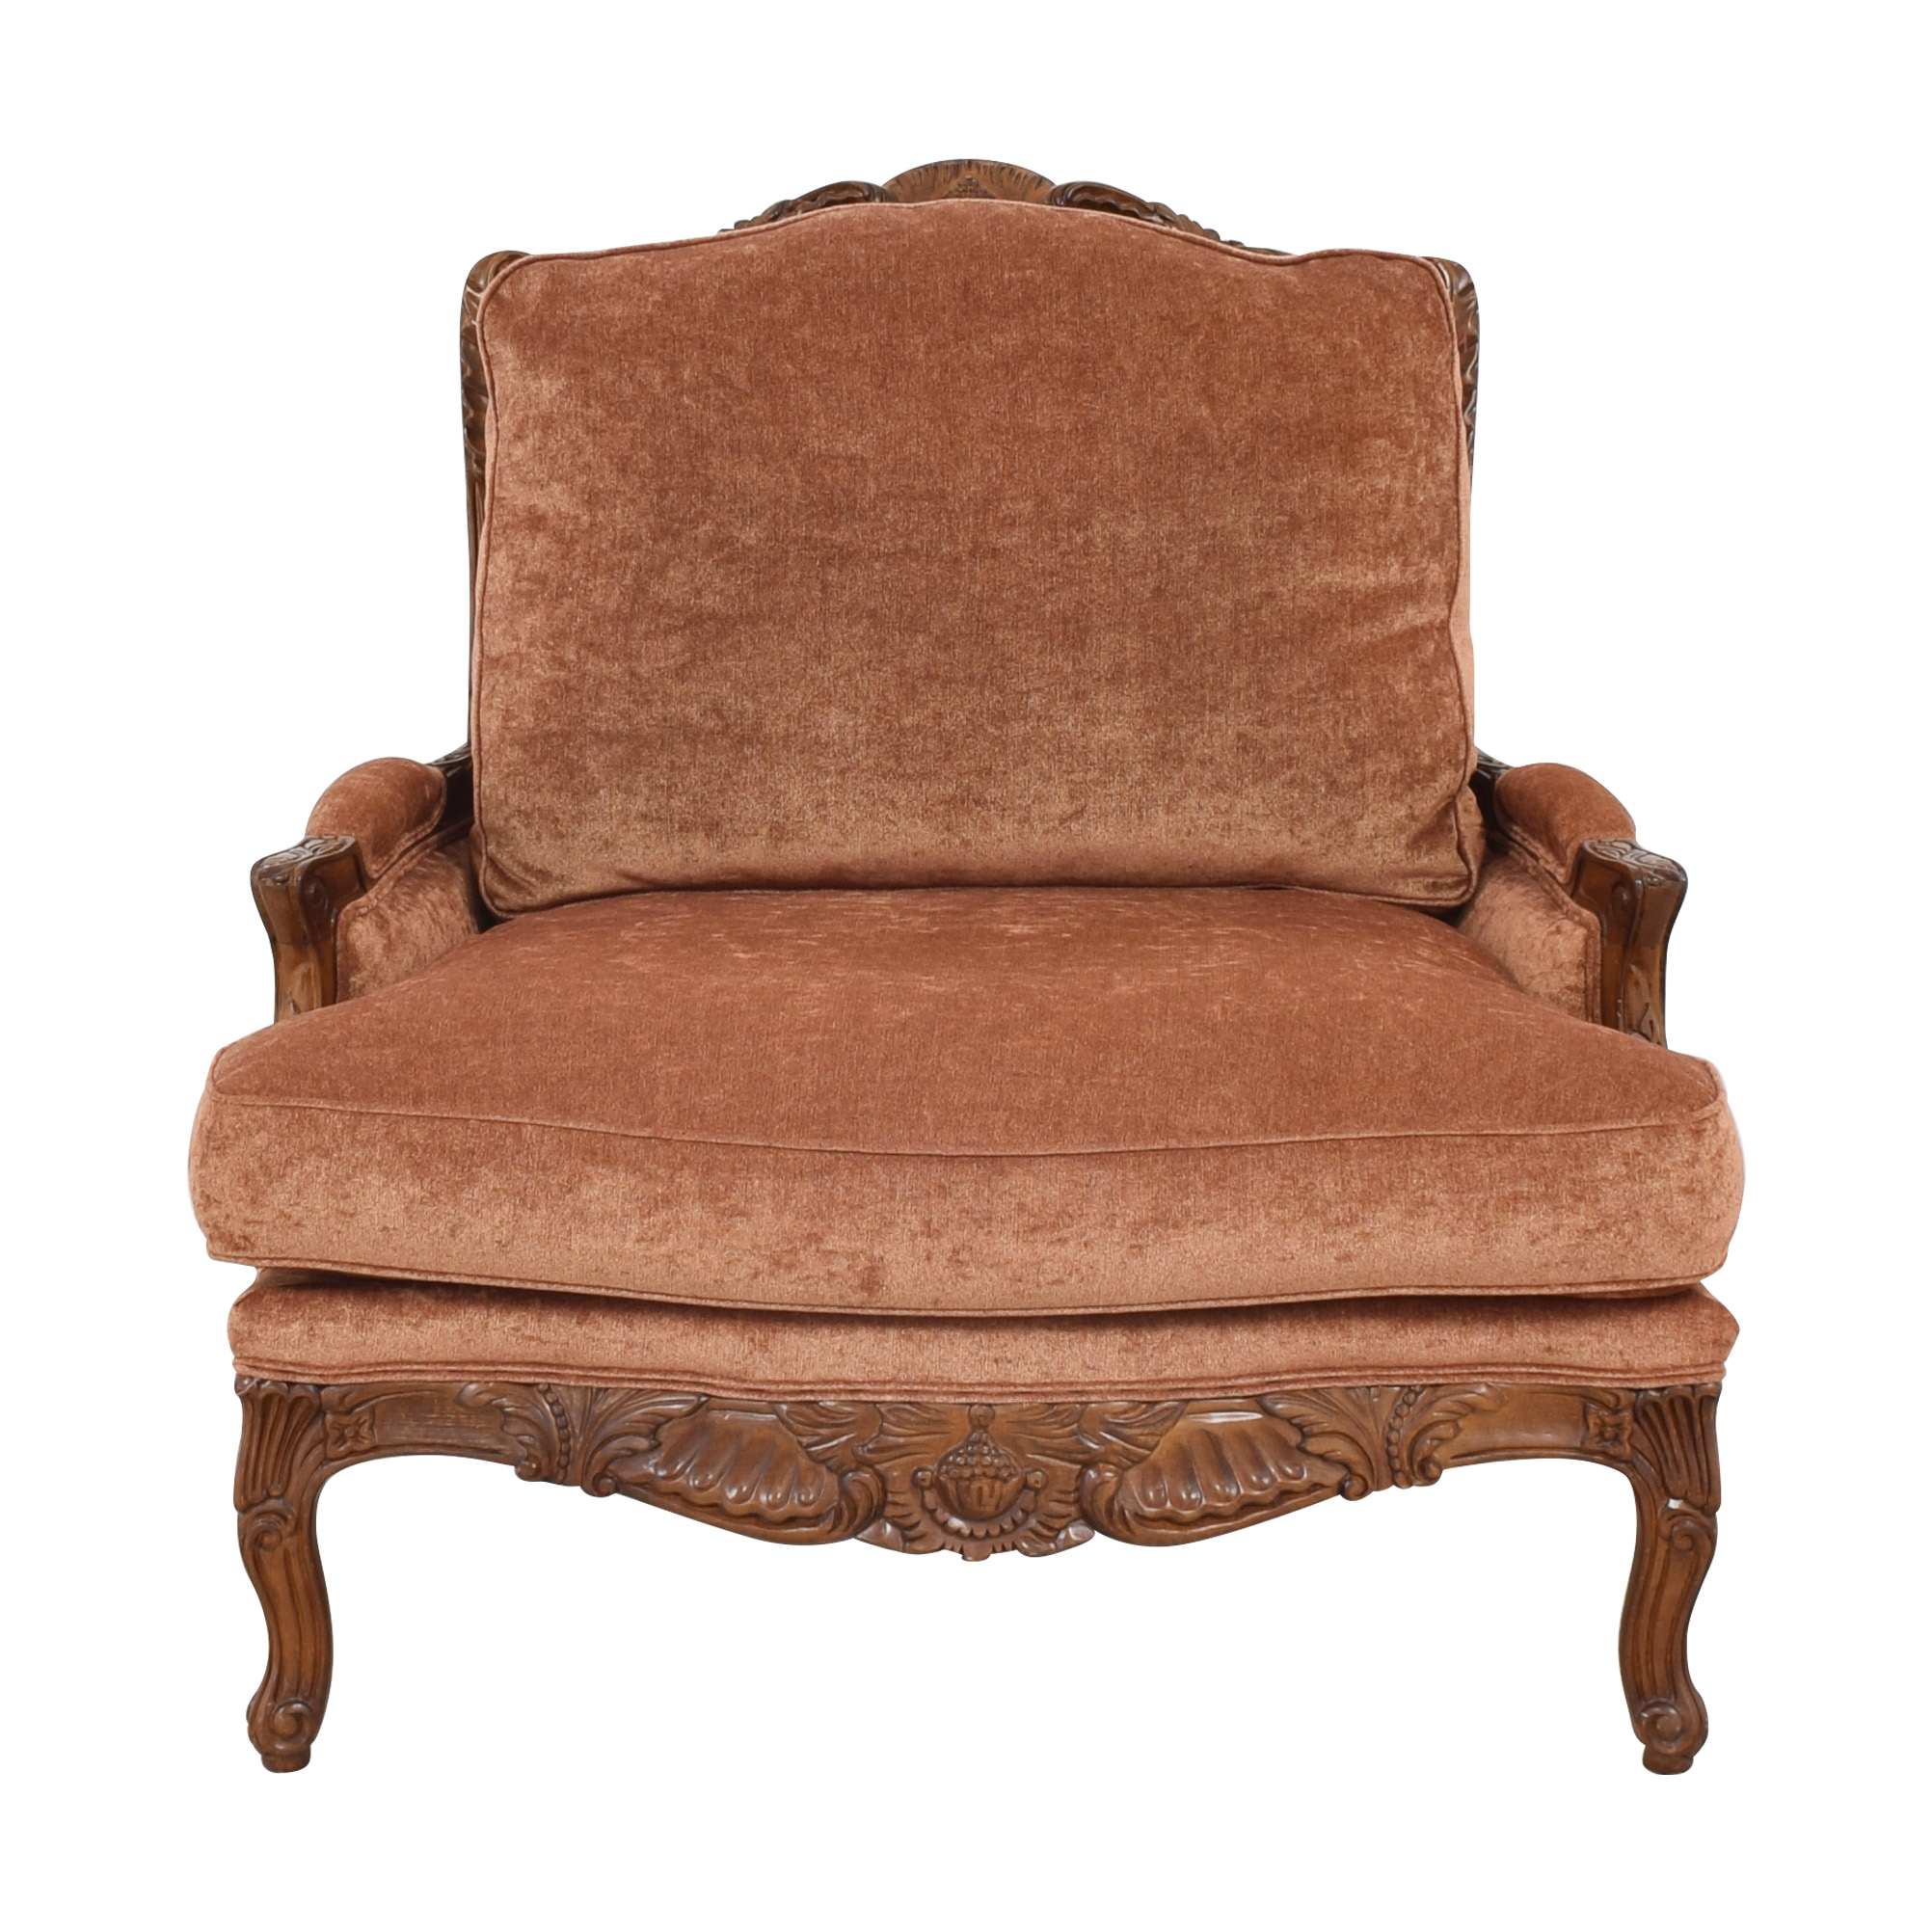 Zacksons Fine Furniture Zaksons Carved Lounge Chair ma